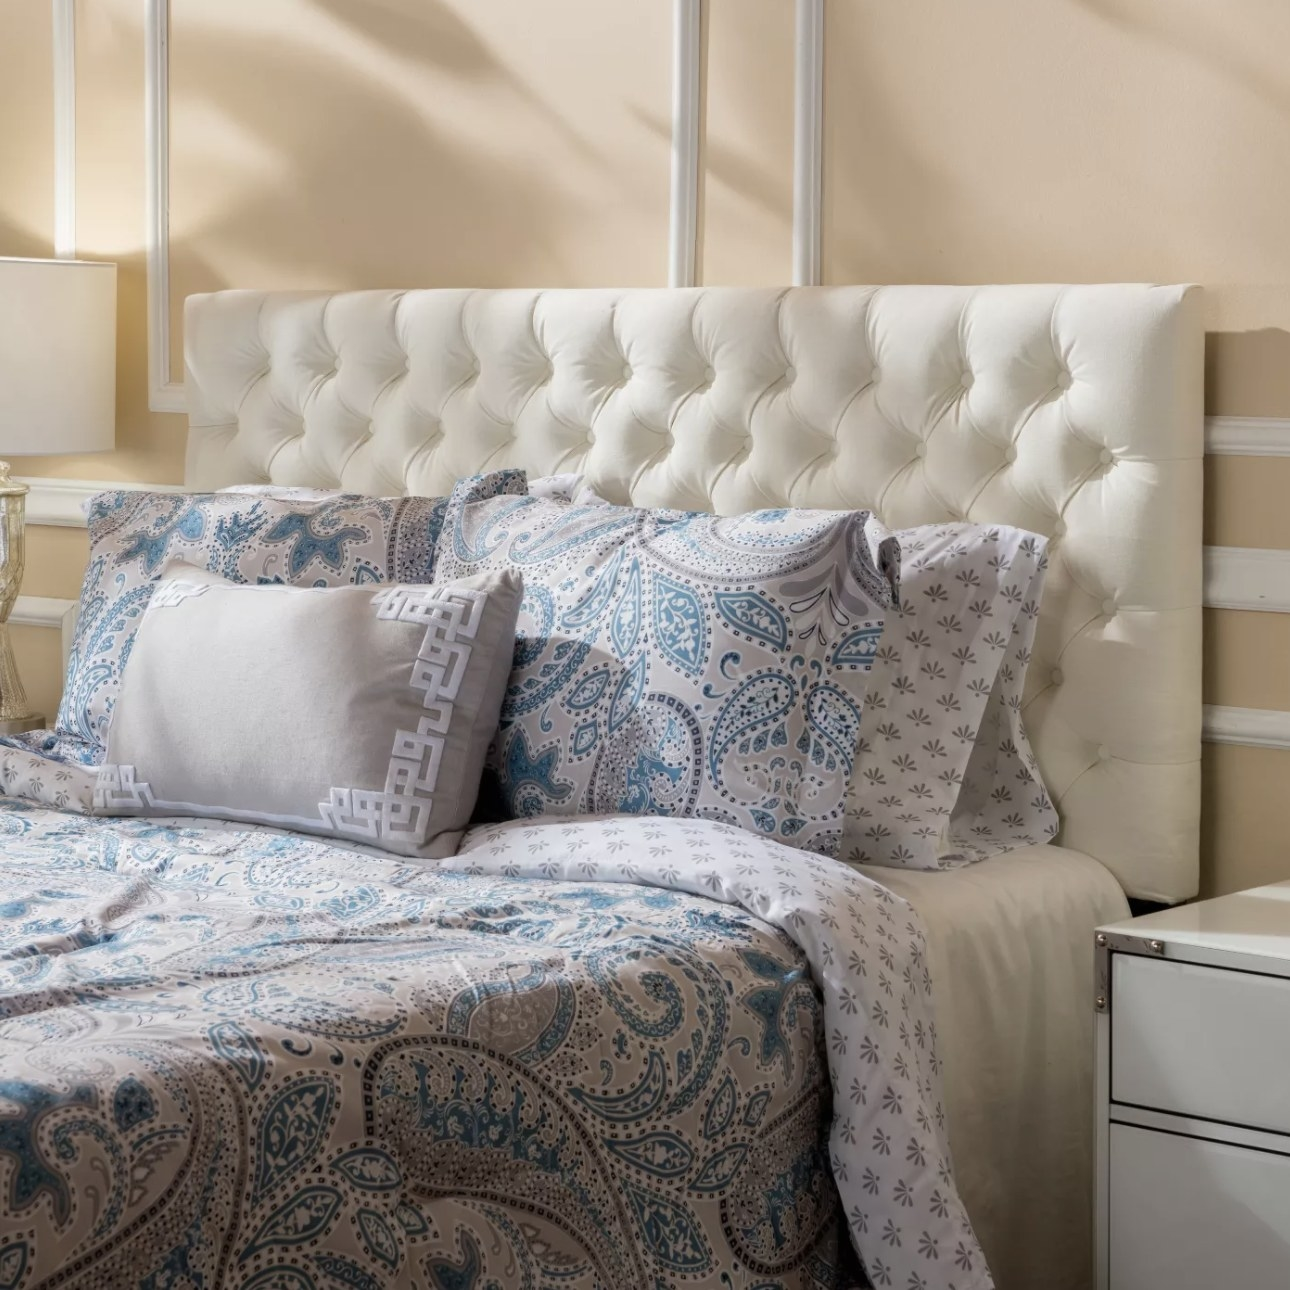 Tufted headboard attached to bed in bedroom